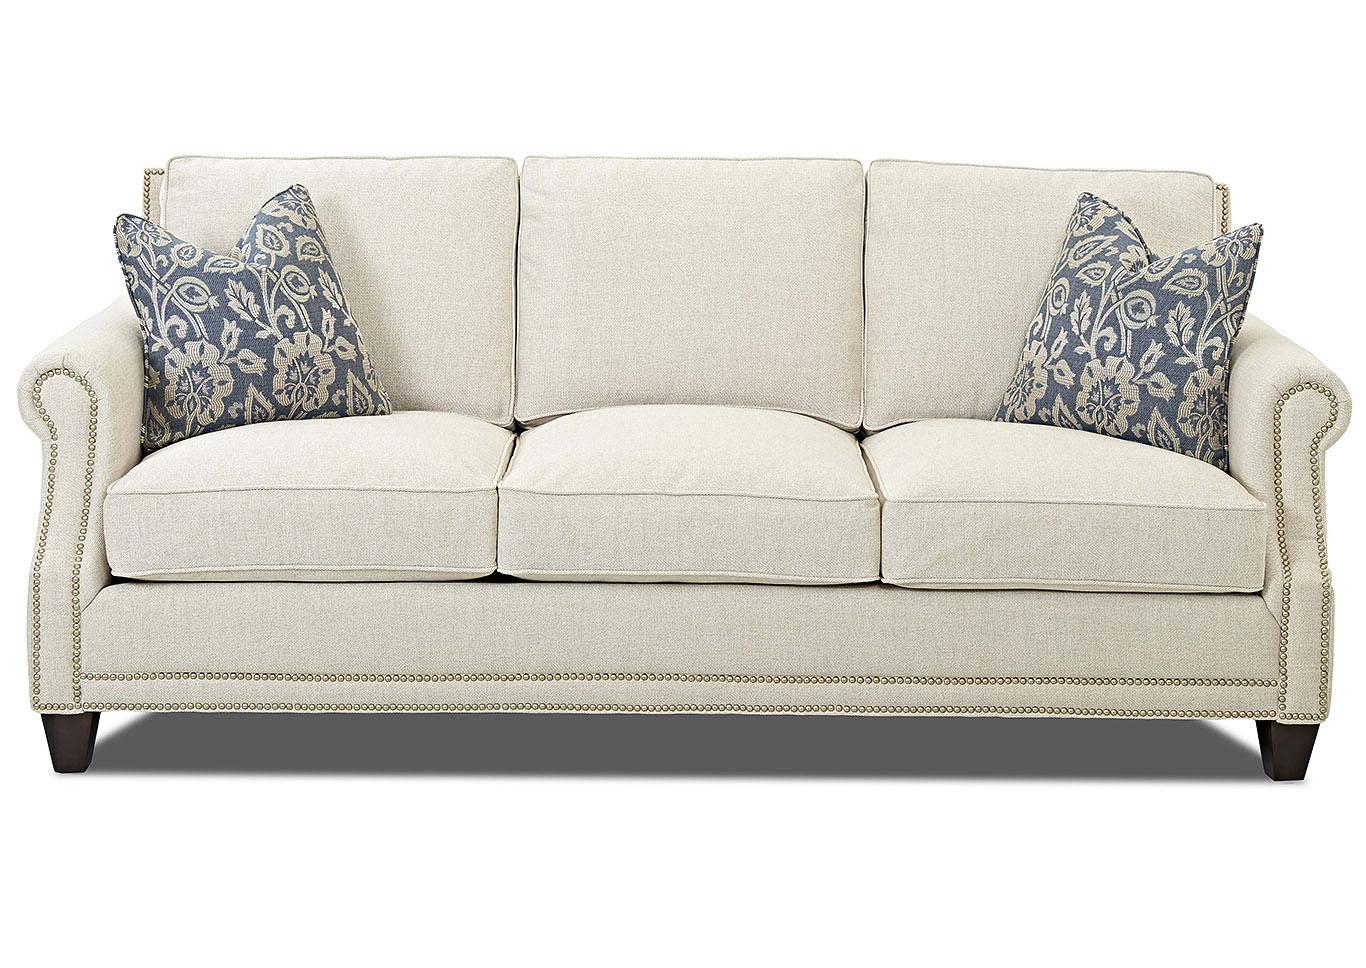 York Deauville Vanilla Stationary Fabric Sofa,Klaussner Home Furnishings